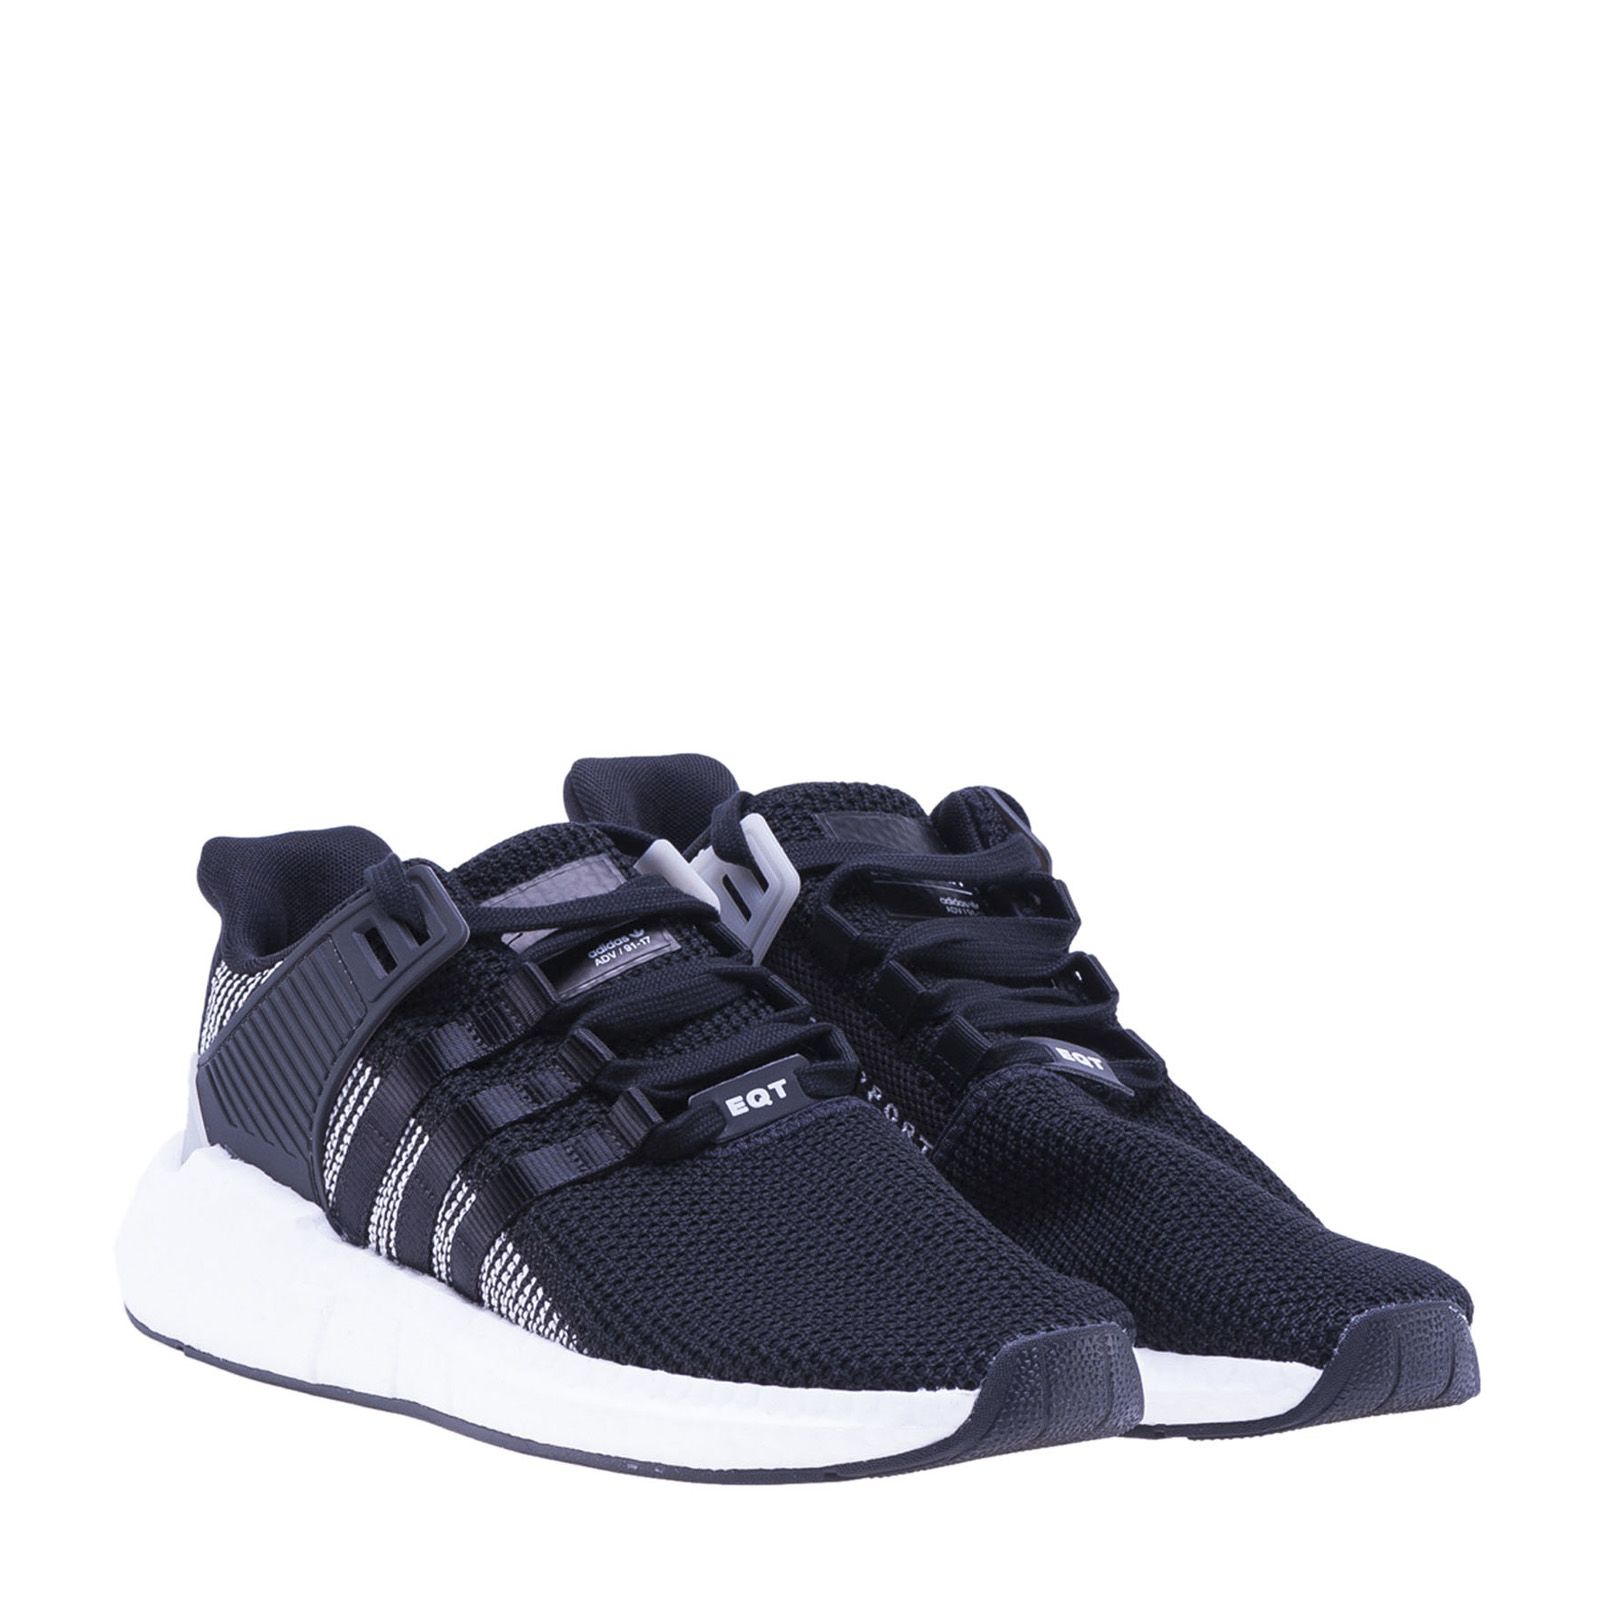 Adidas Originals Black And White Eqt Support Sneakers